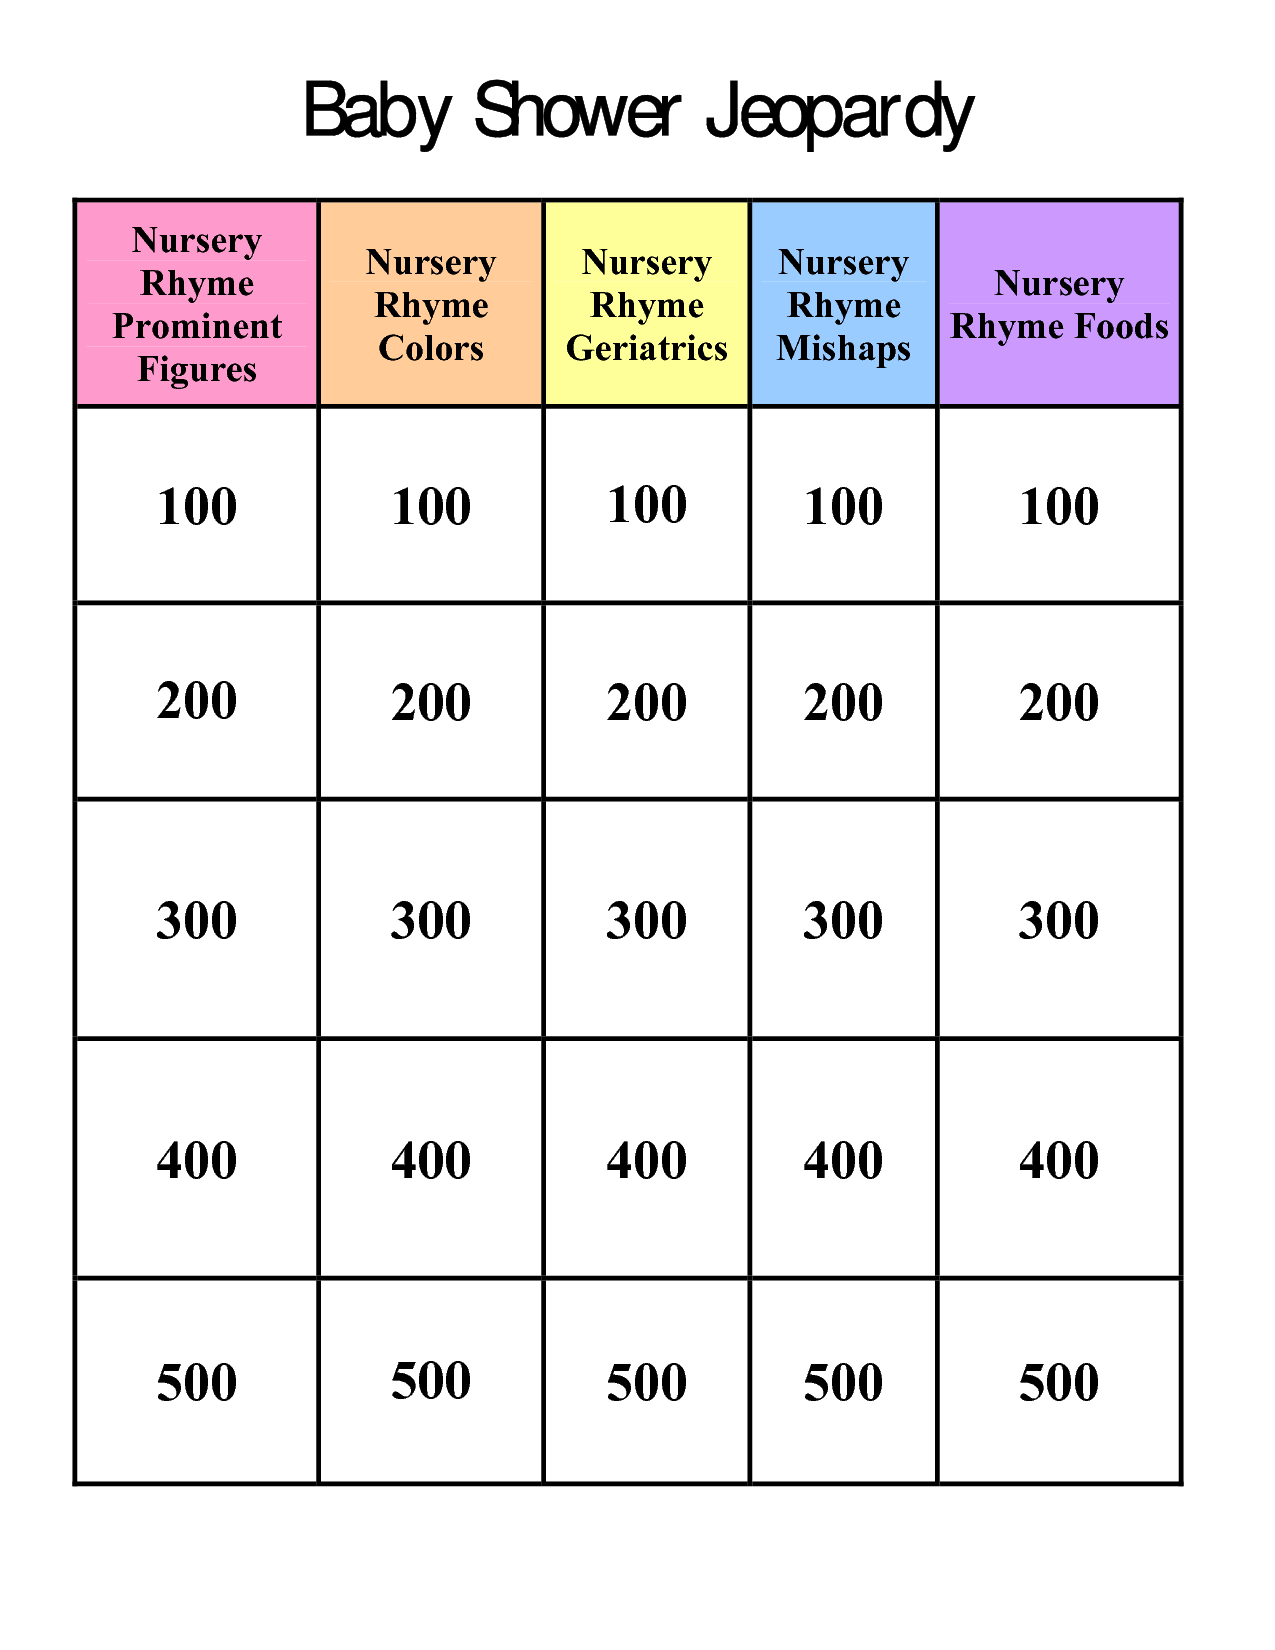 Baby Shower Jeopardy Template